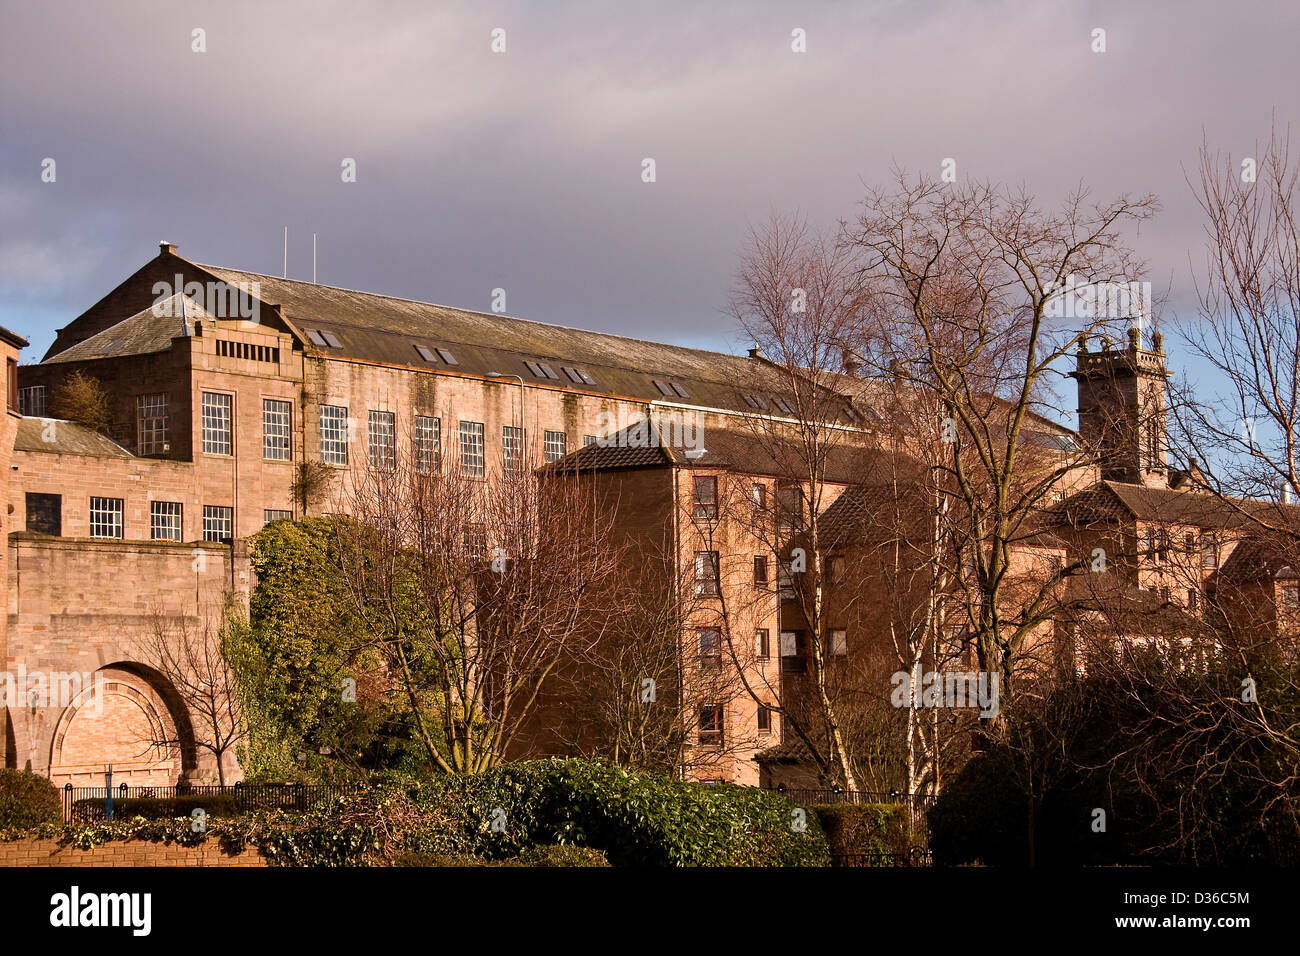 Scottish 1800`s Jute Mill owned by Baxter Brothers and is now a Listed Building in Princess Street Dundee, UK - Stock Image